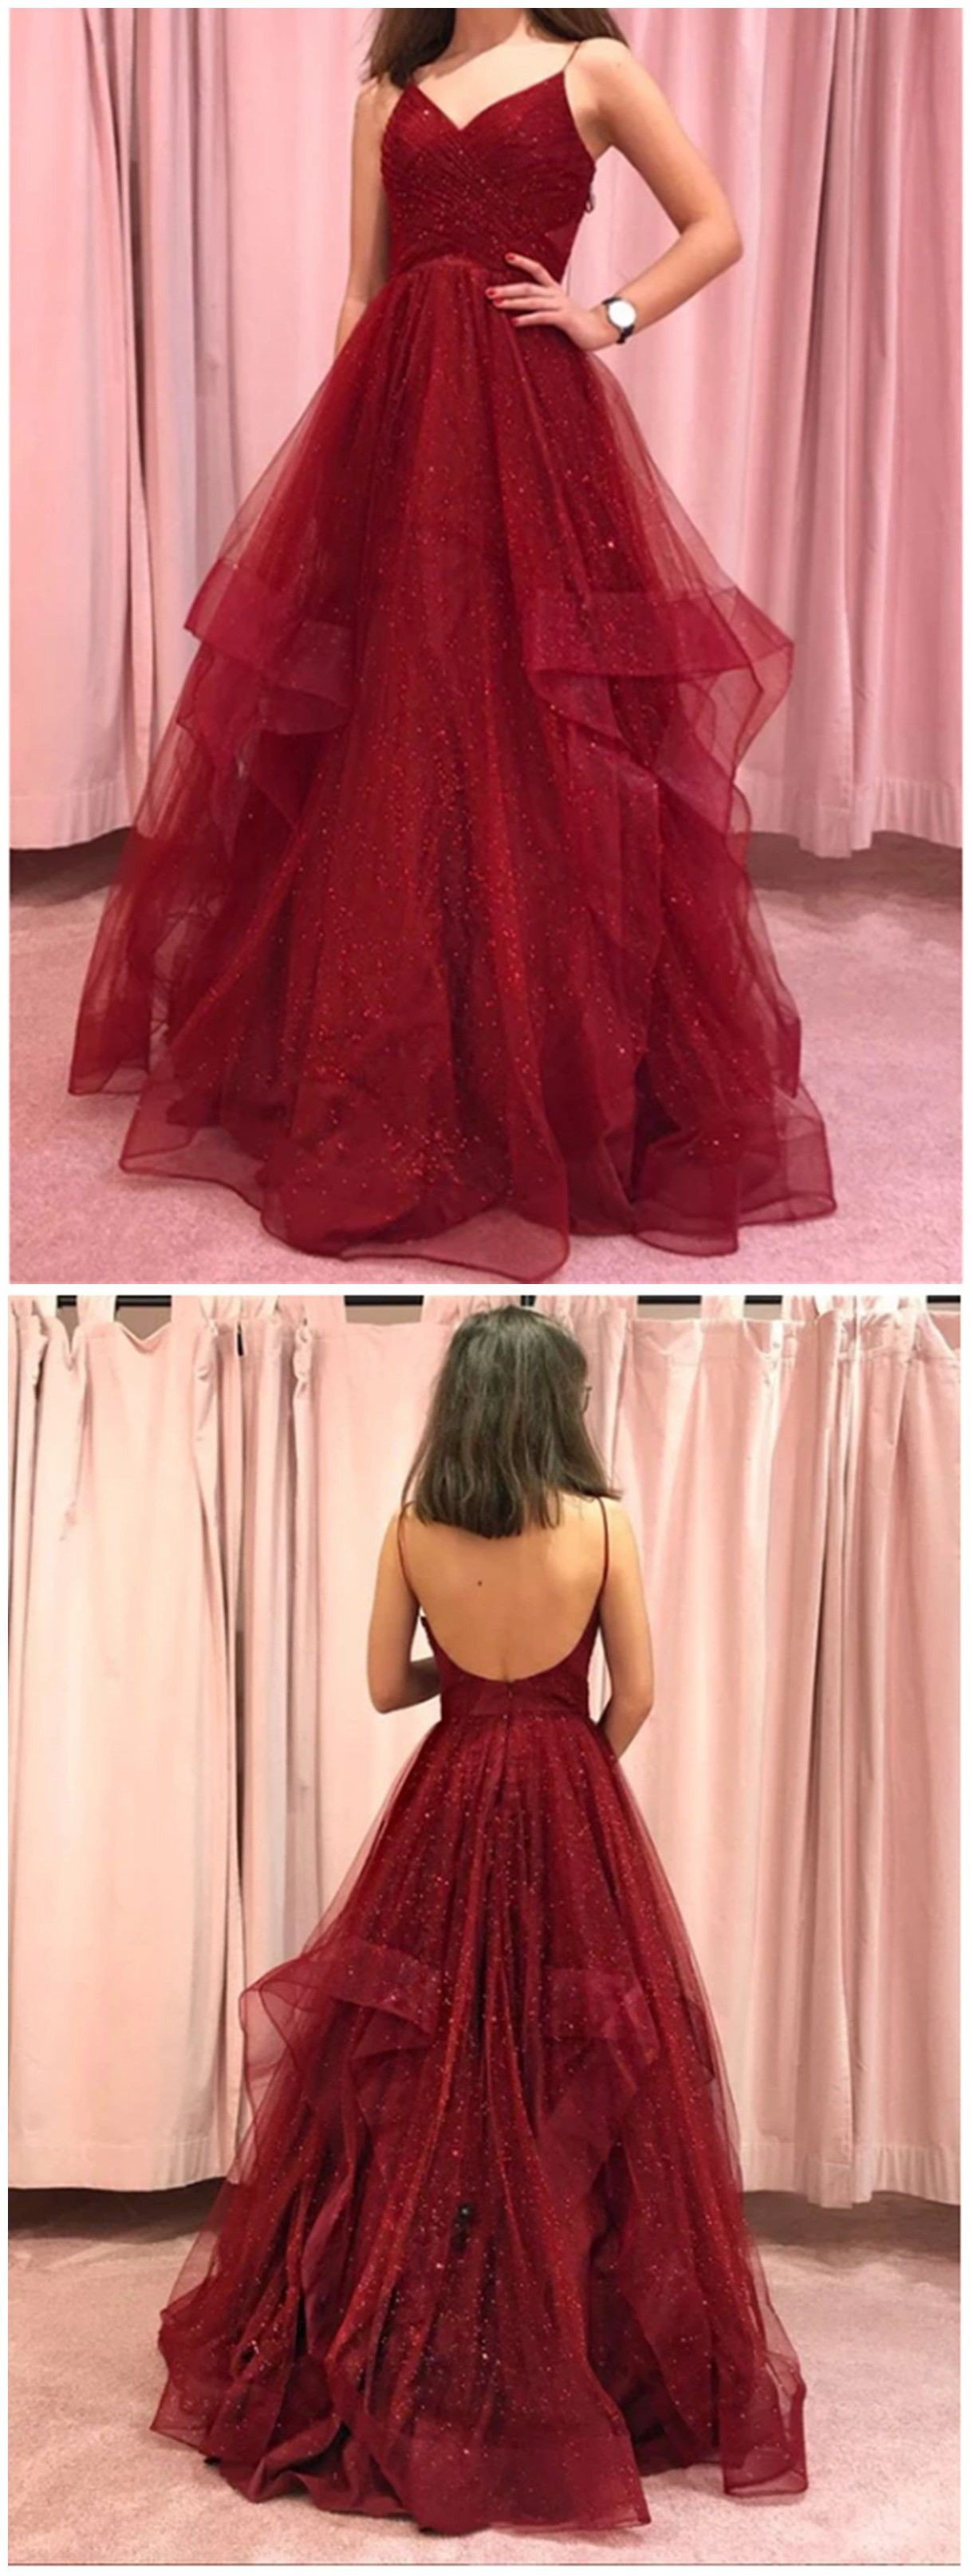 Pink and red outfit Stylevore with bridal party dress, strapless dress, backless dress, formal w ...